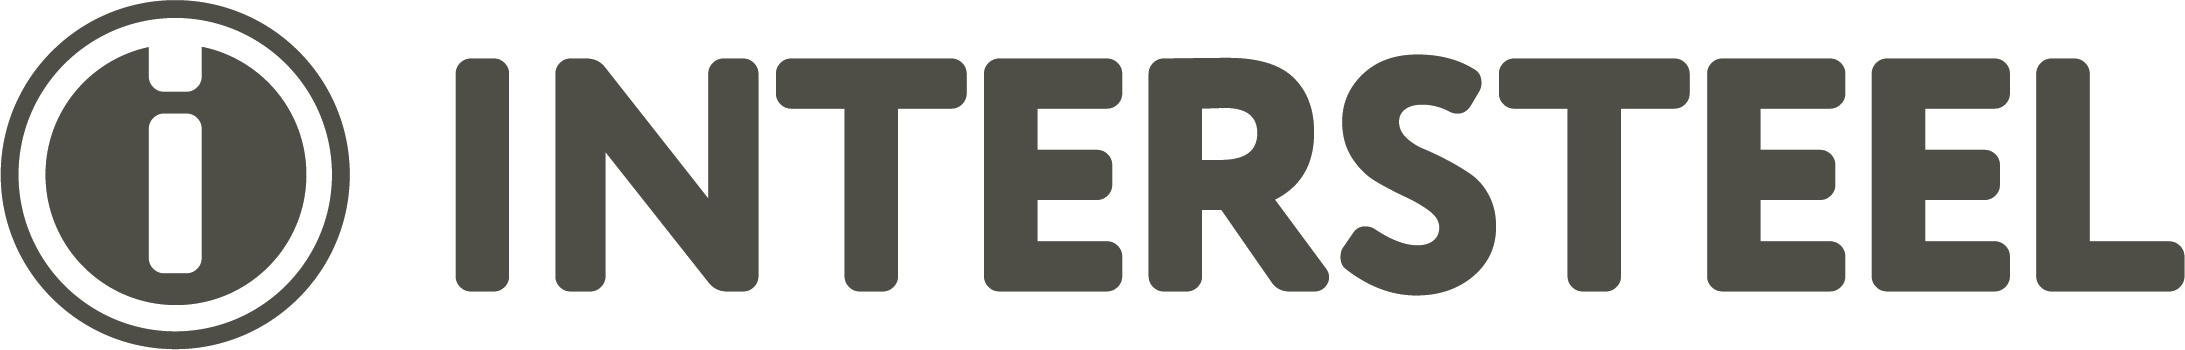 Intersteel logo